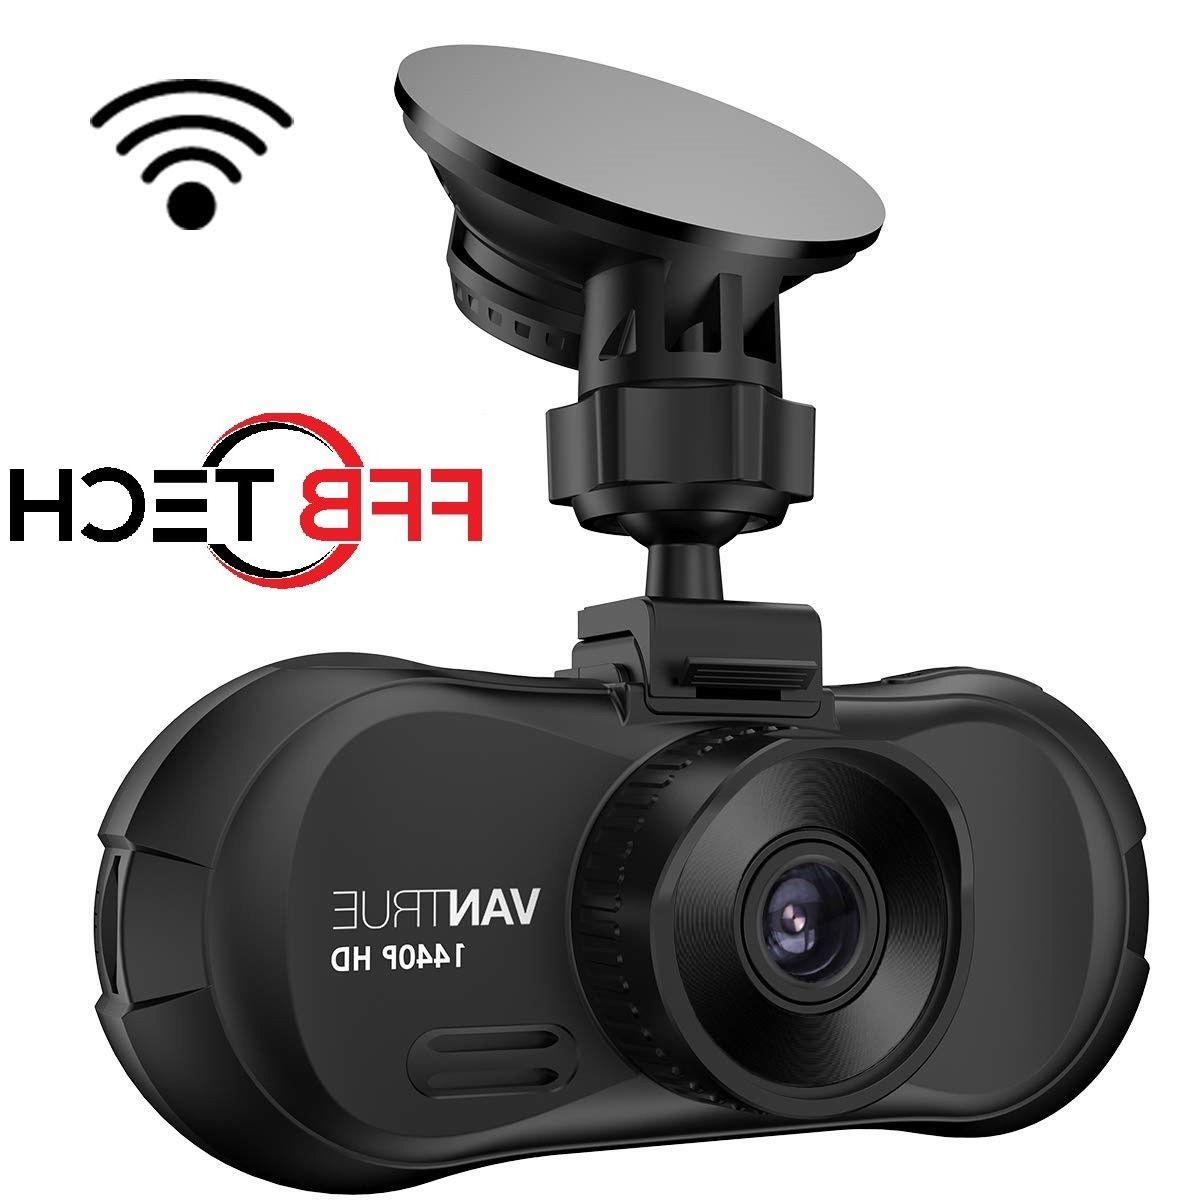 x3 wifi dash cam super hd 2